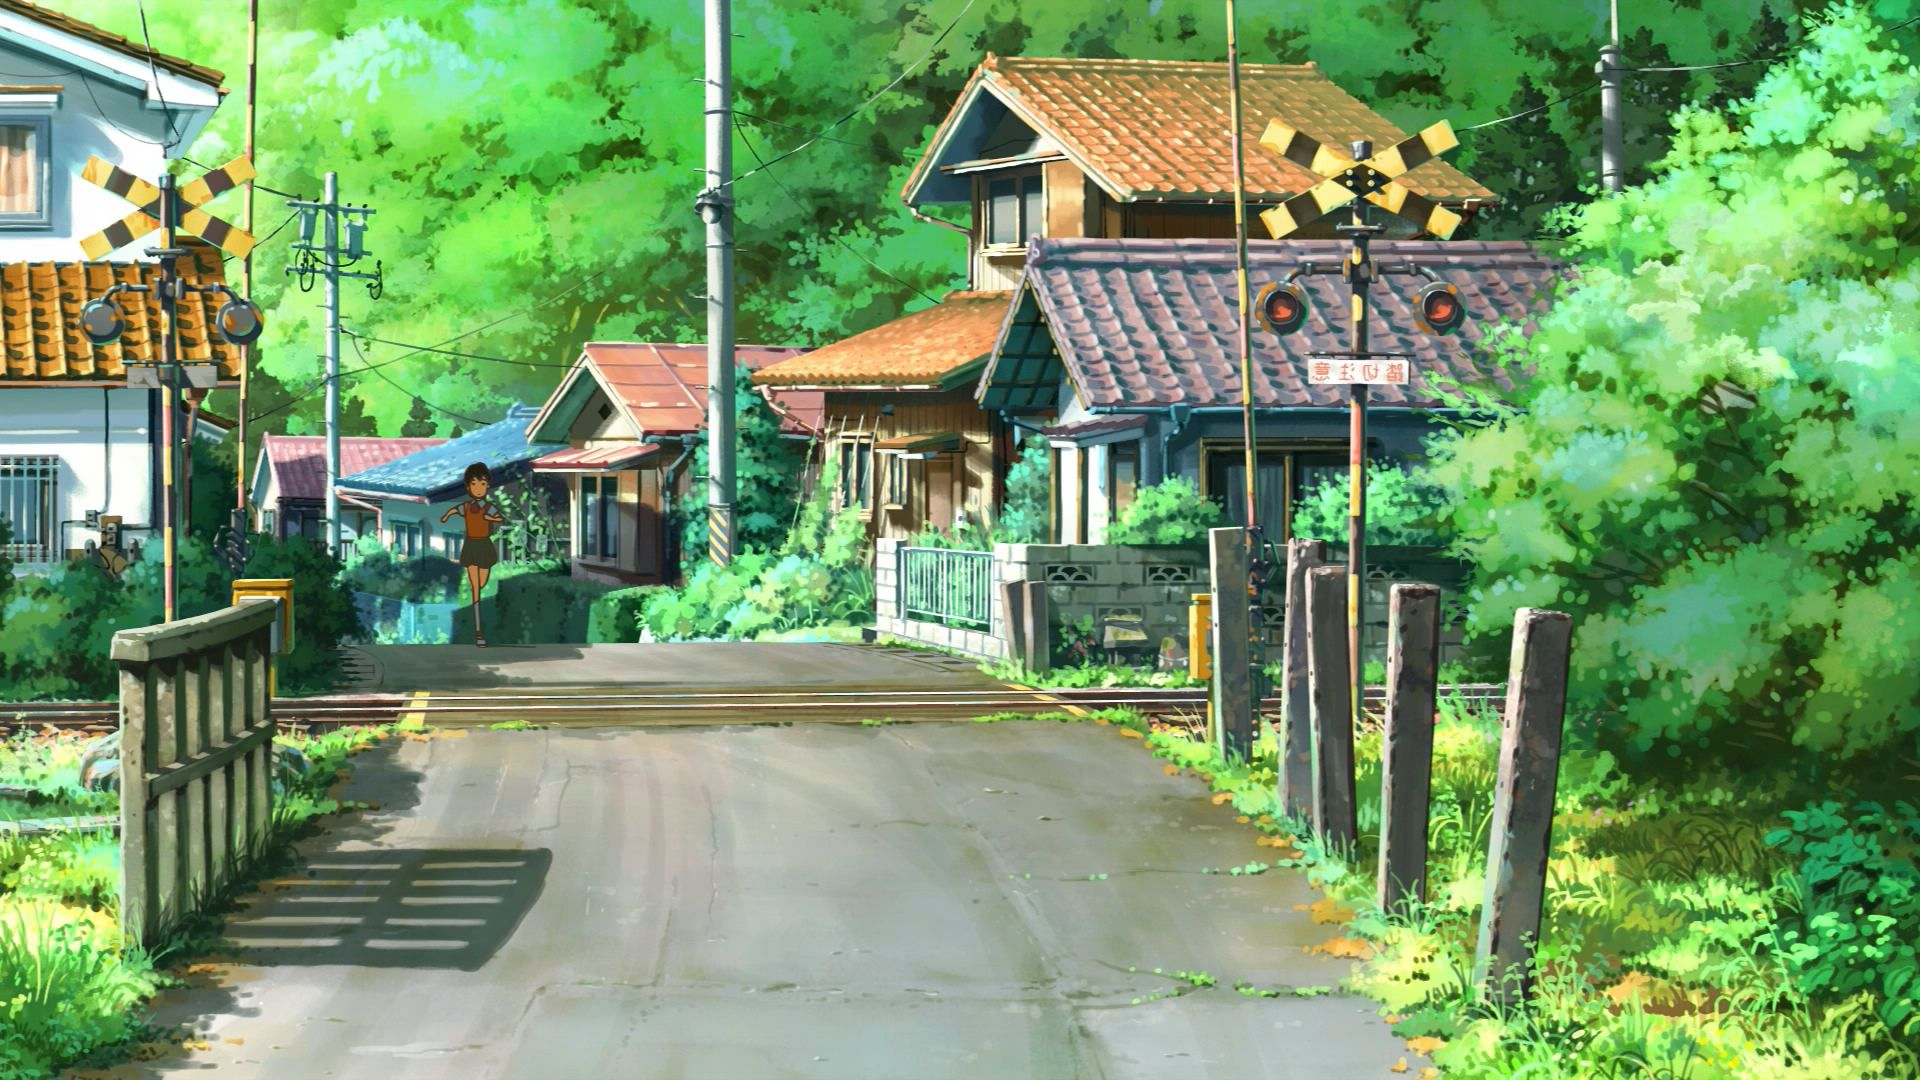 Anime landscape wallpaper hd pixelstalk net - Art village wallpaper ...